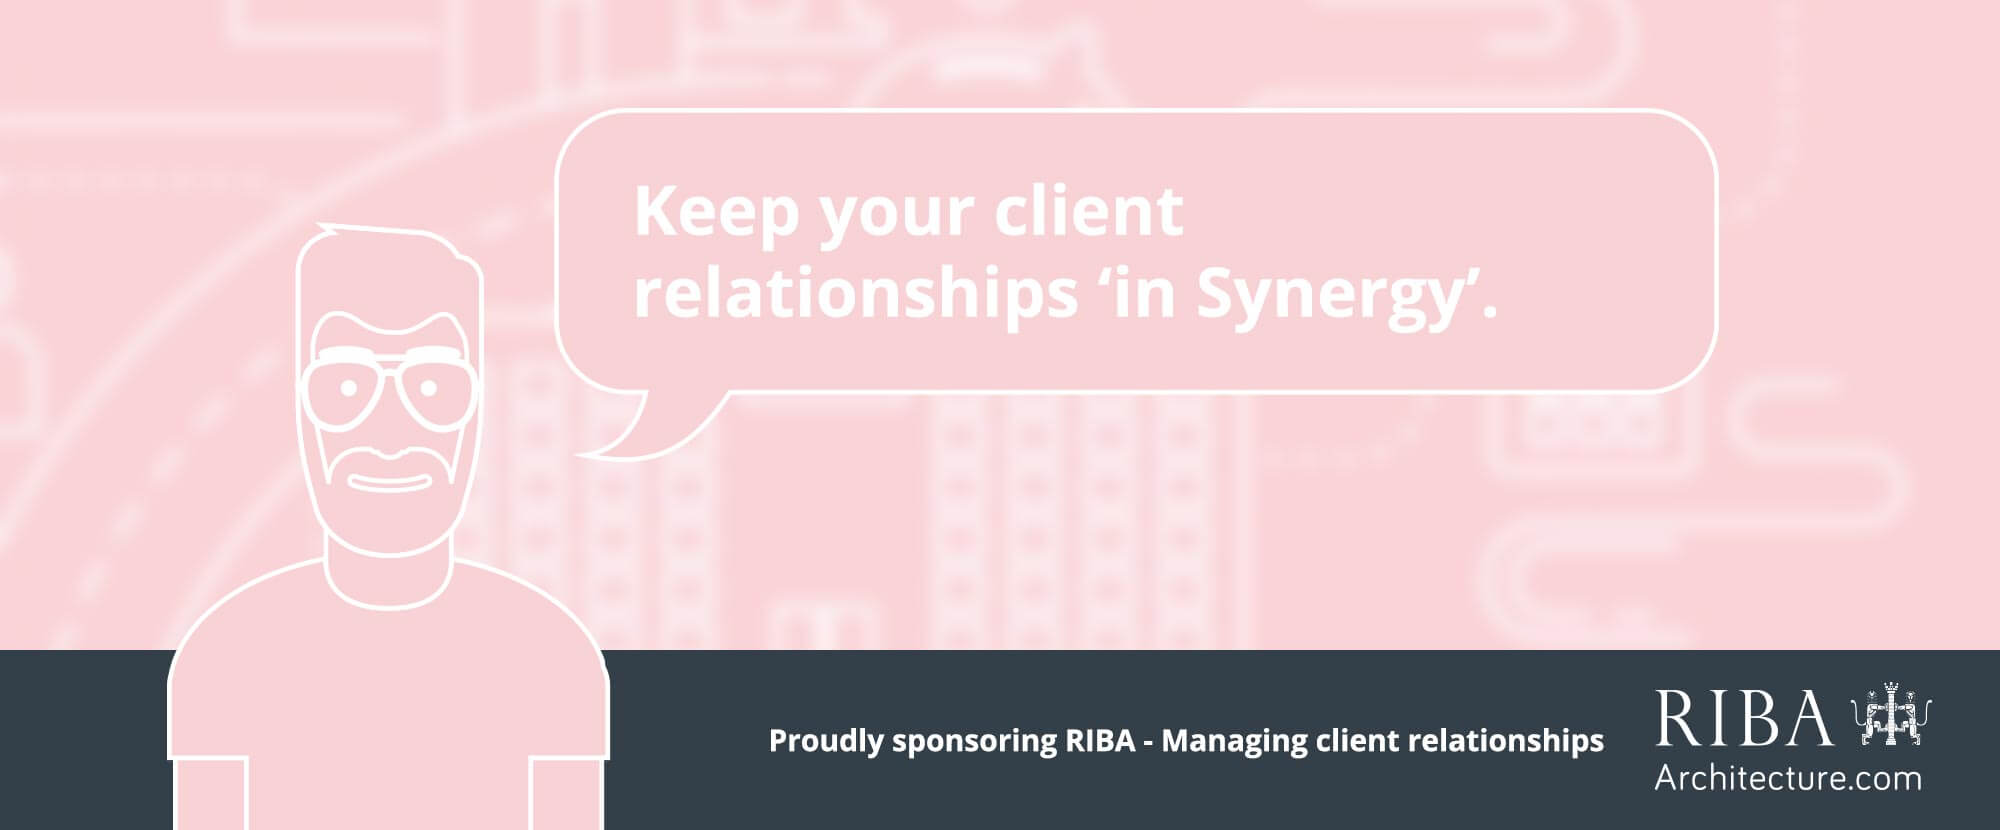 Total Synergy is sponsoring three RIBA CPD events on managing client relationships.